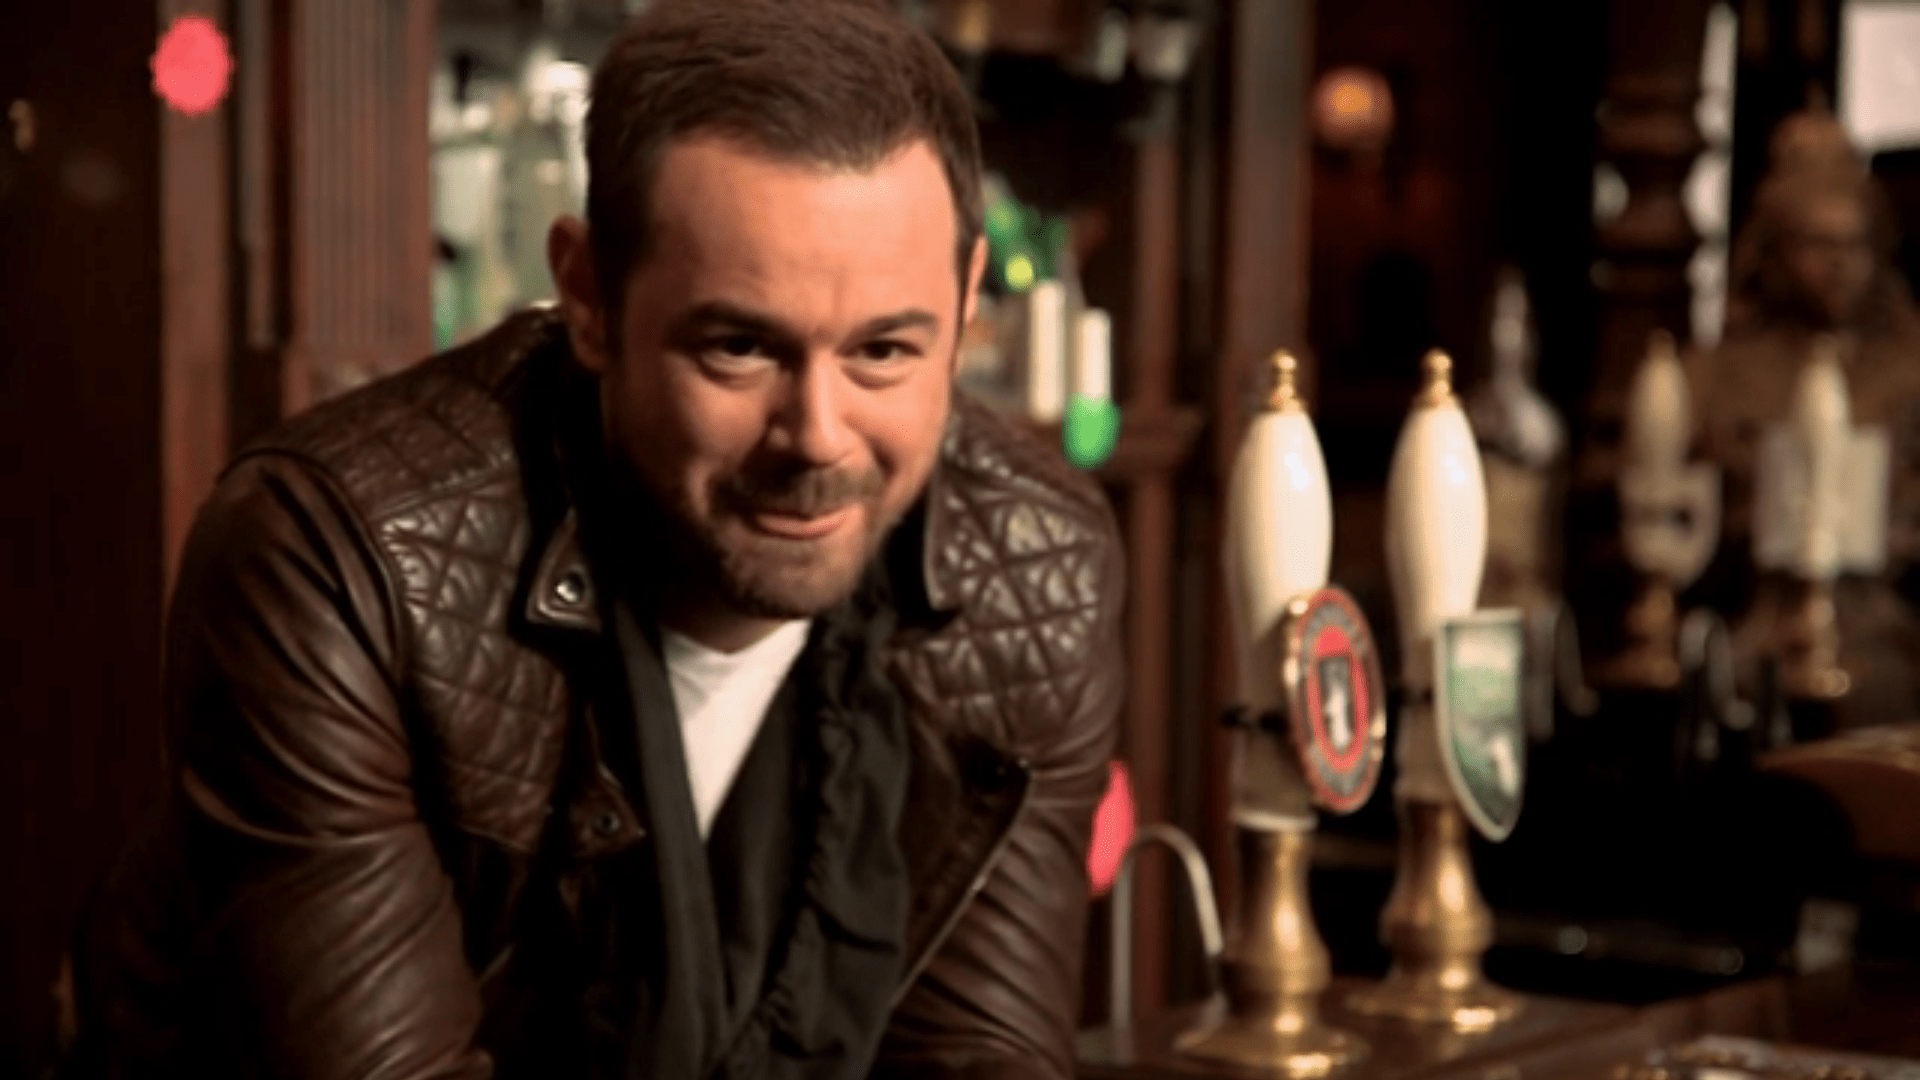 Danny Dyer Backgrounds